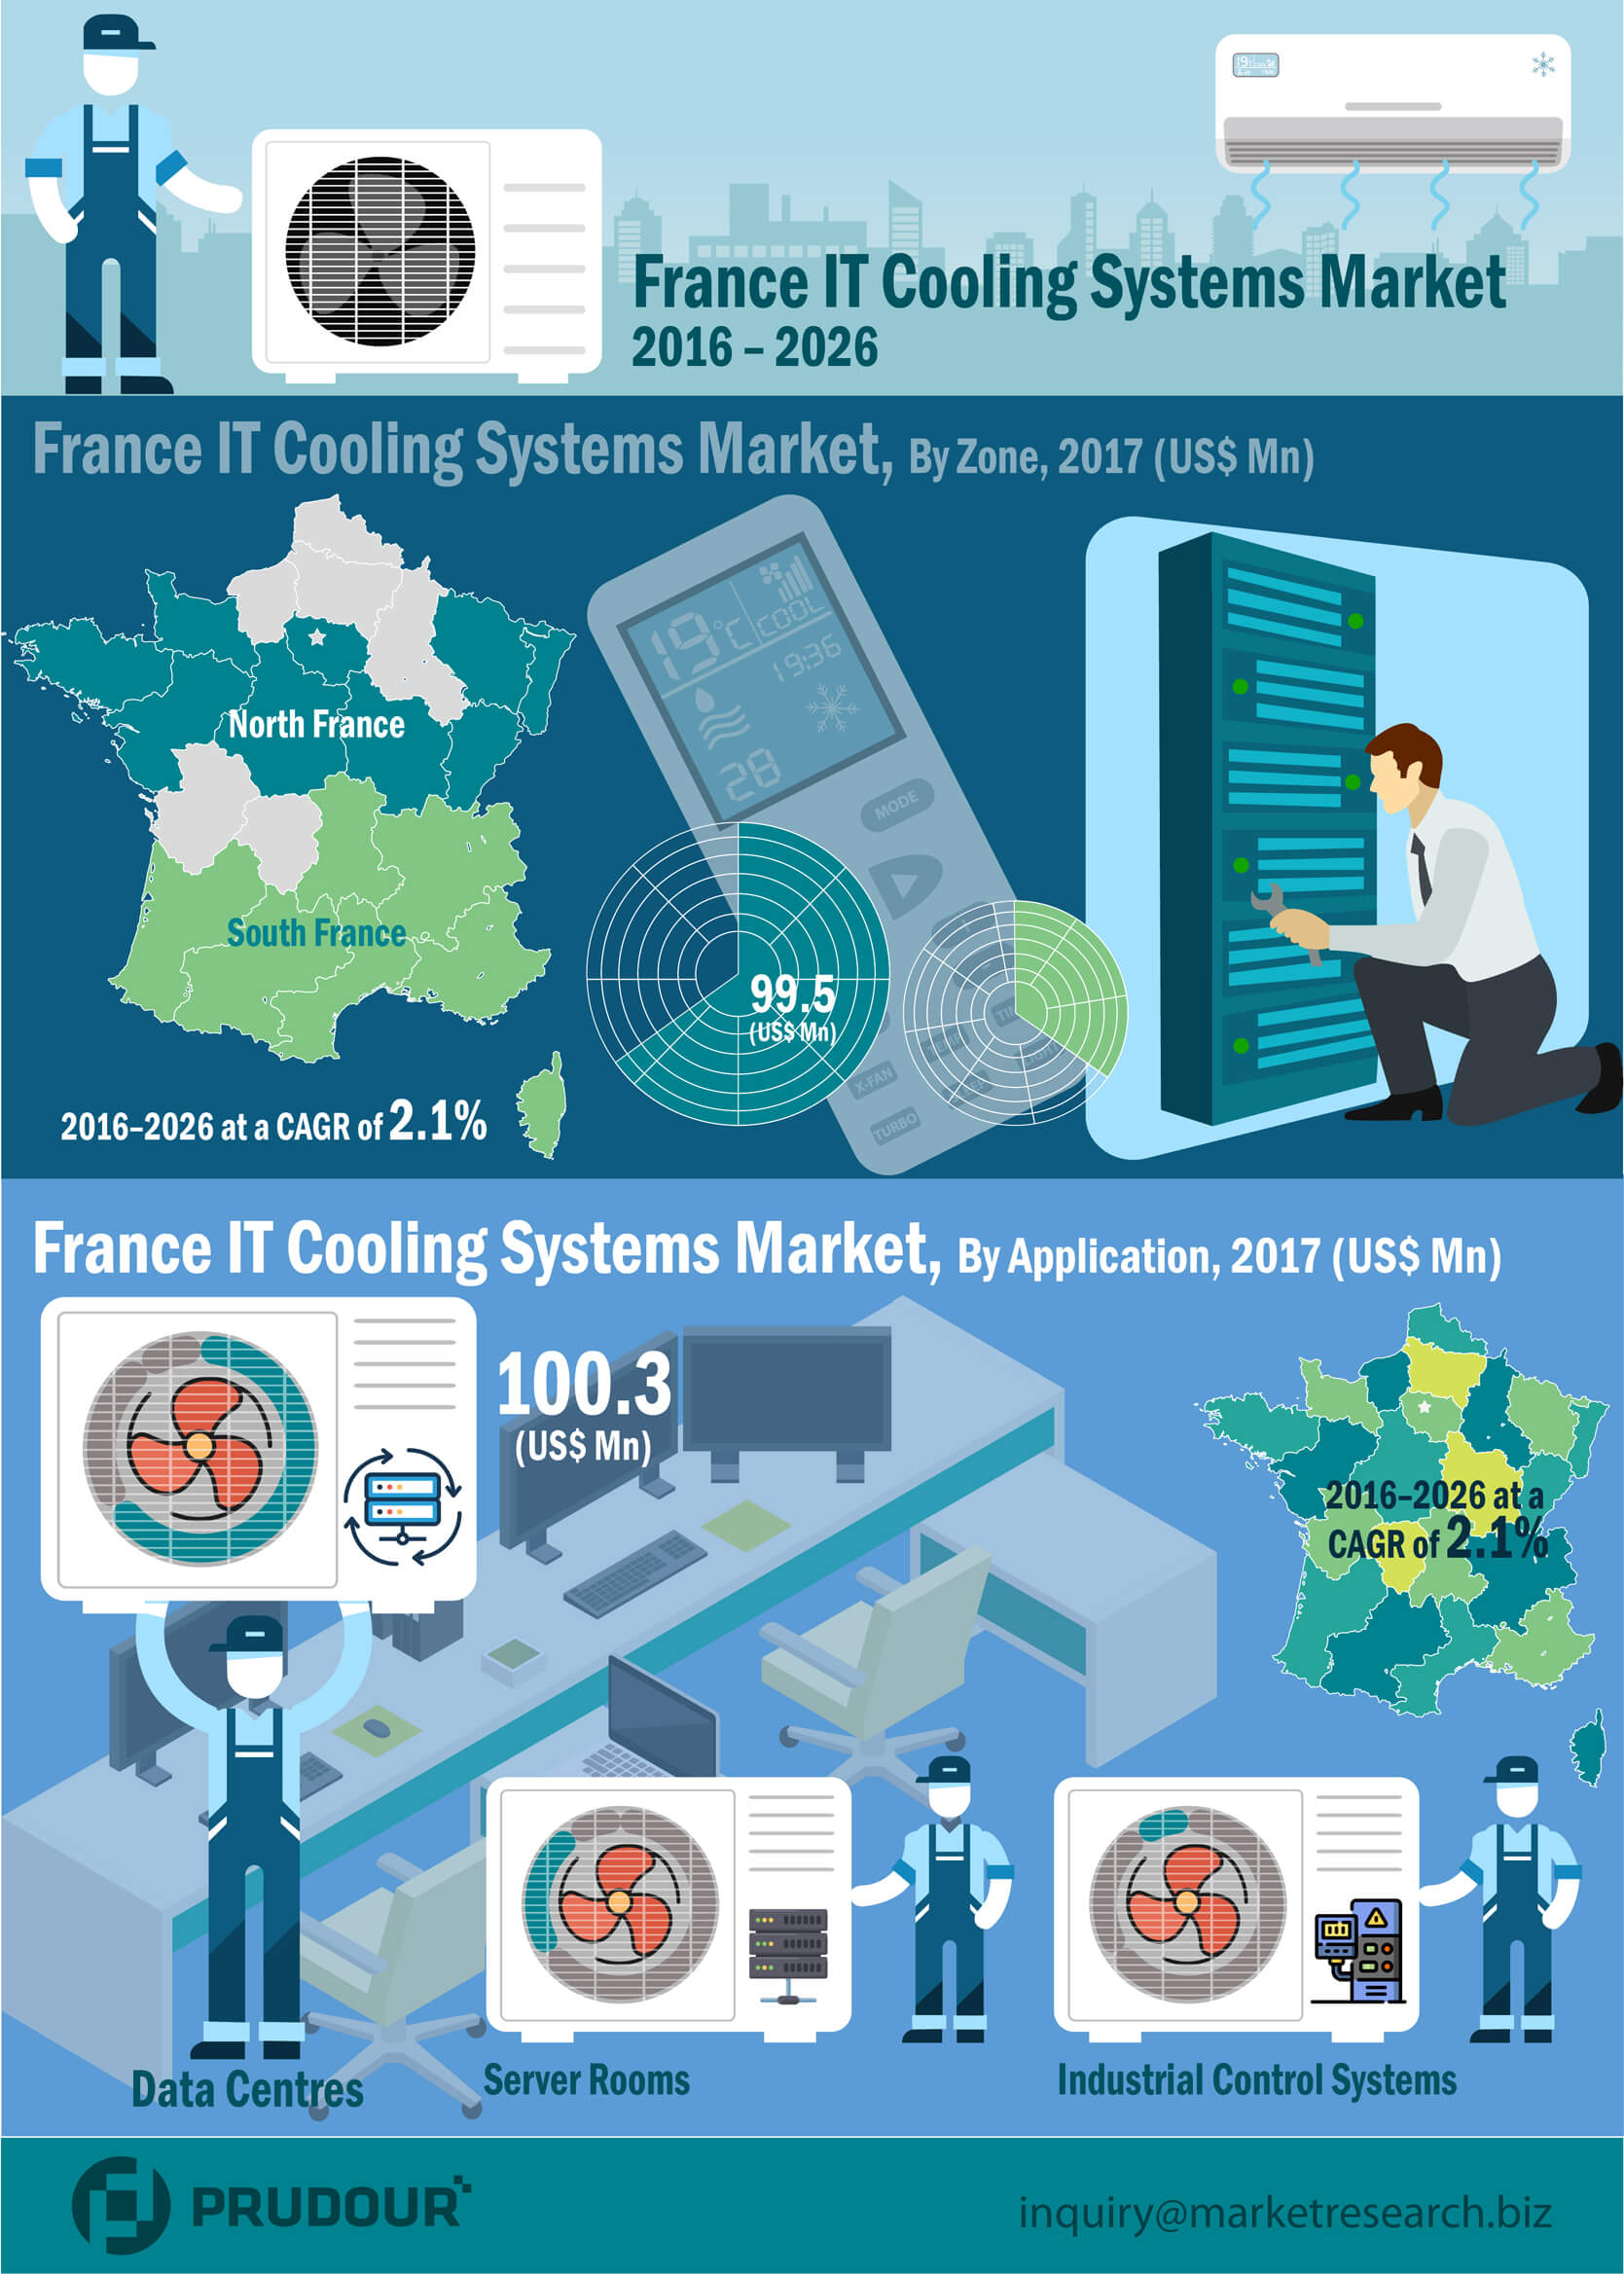 france-IT-cooling-market-infographic-plaza